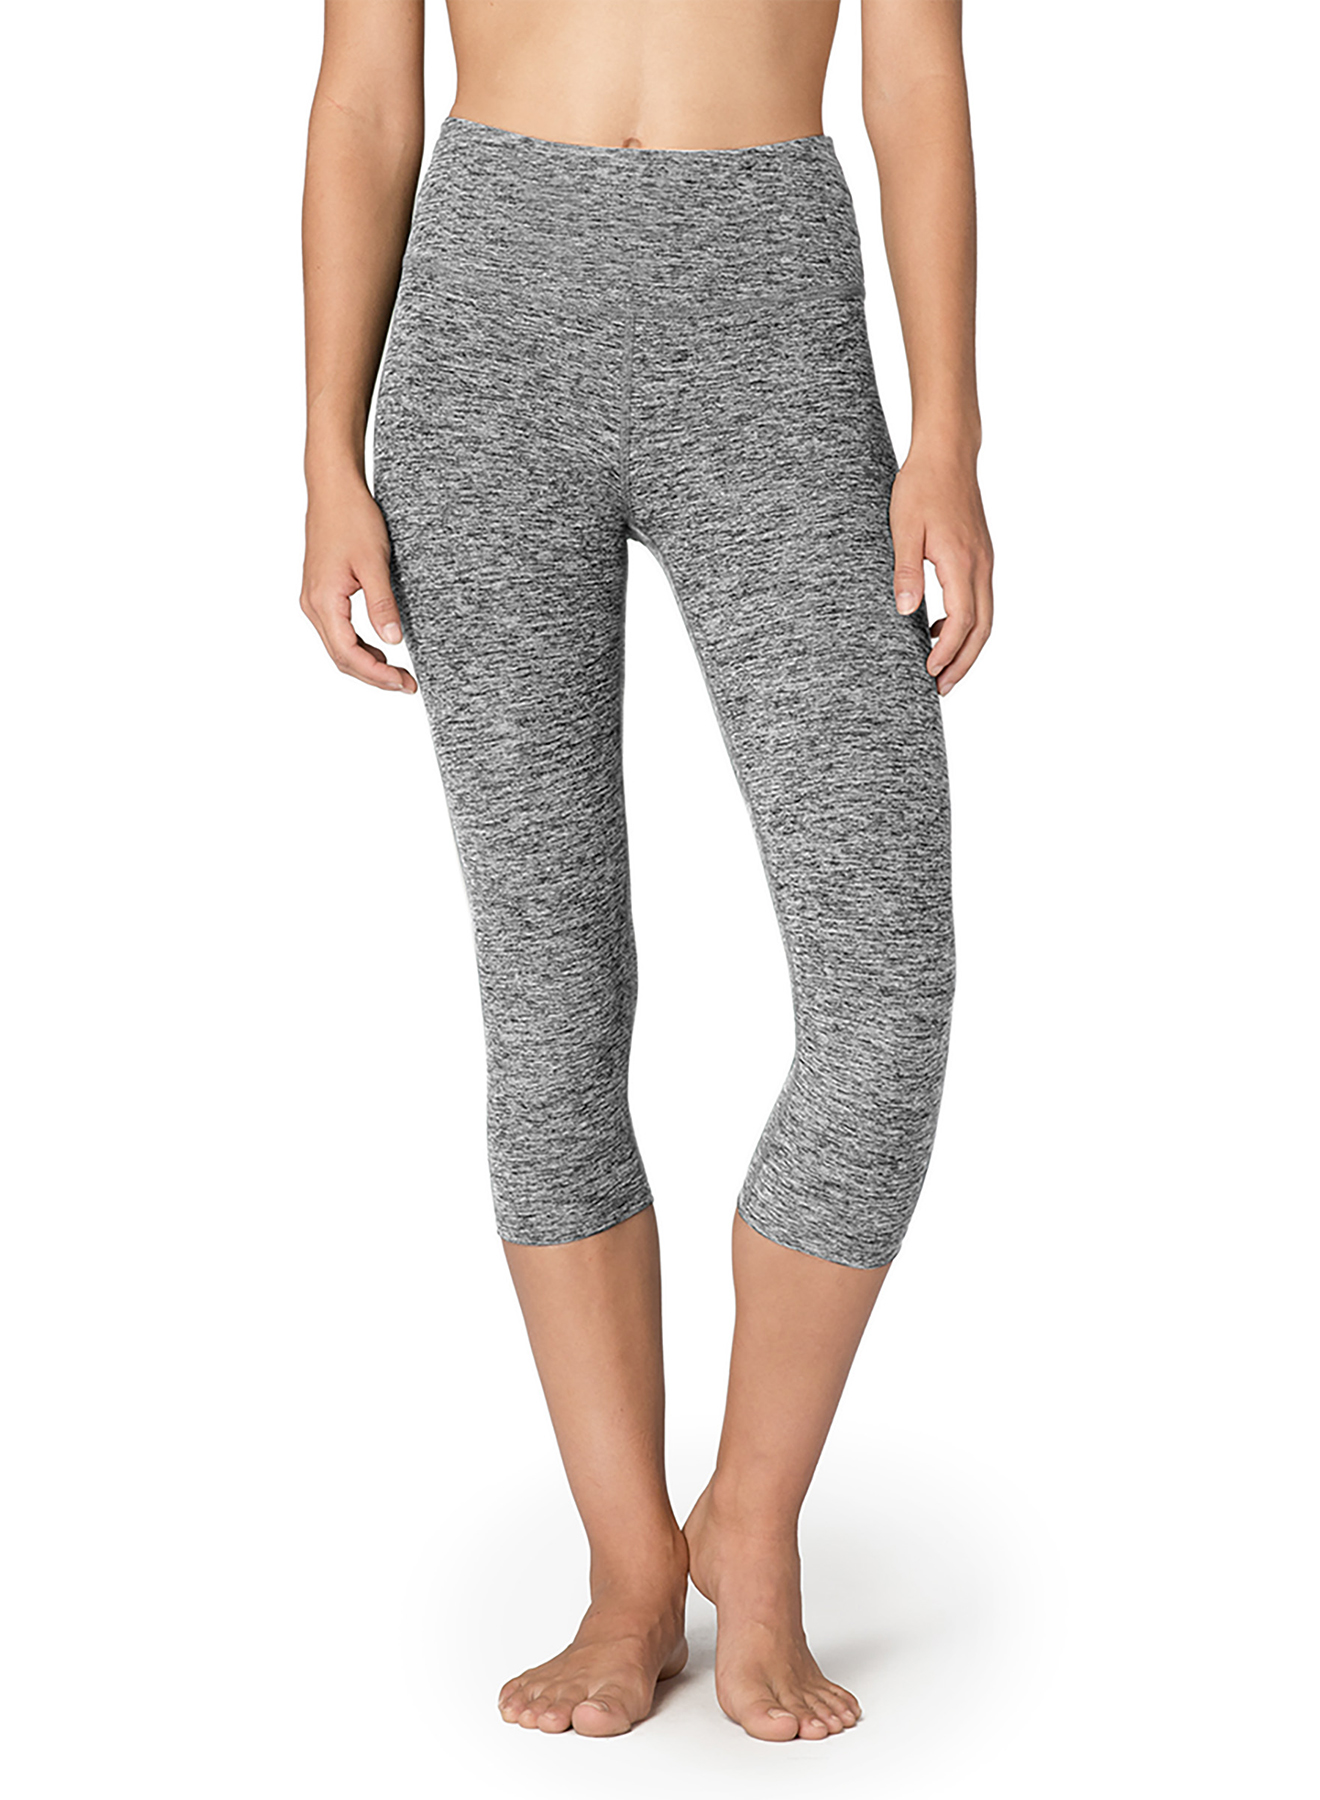 Beyond Yoga Spacedye capris yoga leggings black white